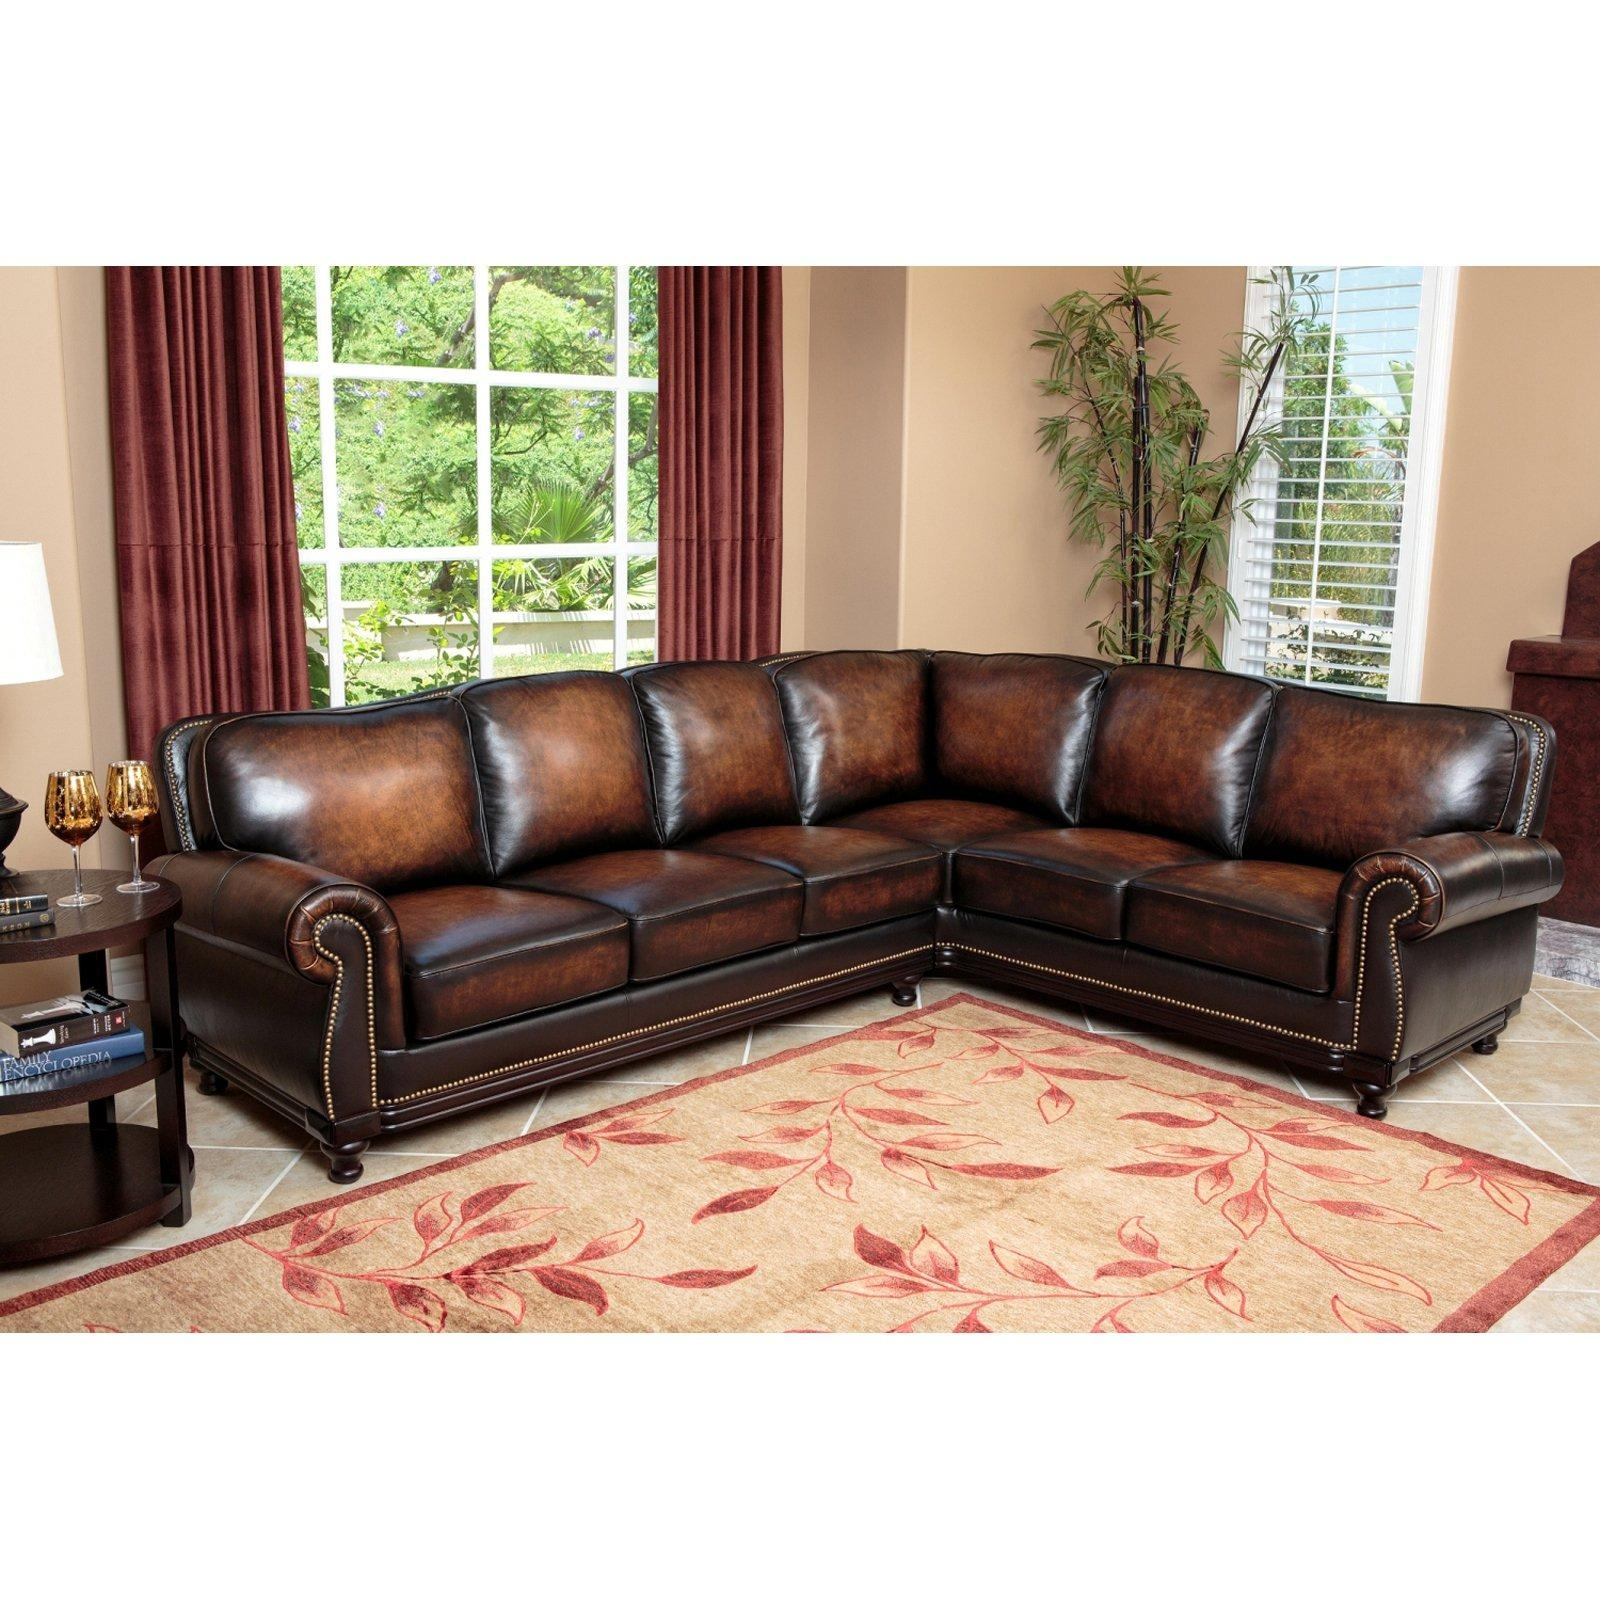 Abbyson Tekana Premium Italian Leather Sectional Sofa – Dark Brown Within Abbyson Sectional Sofa (Image 10 of 15)